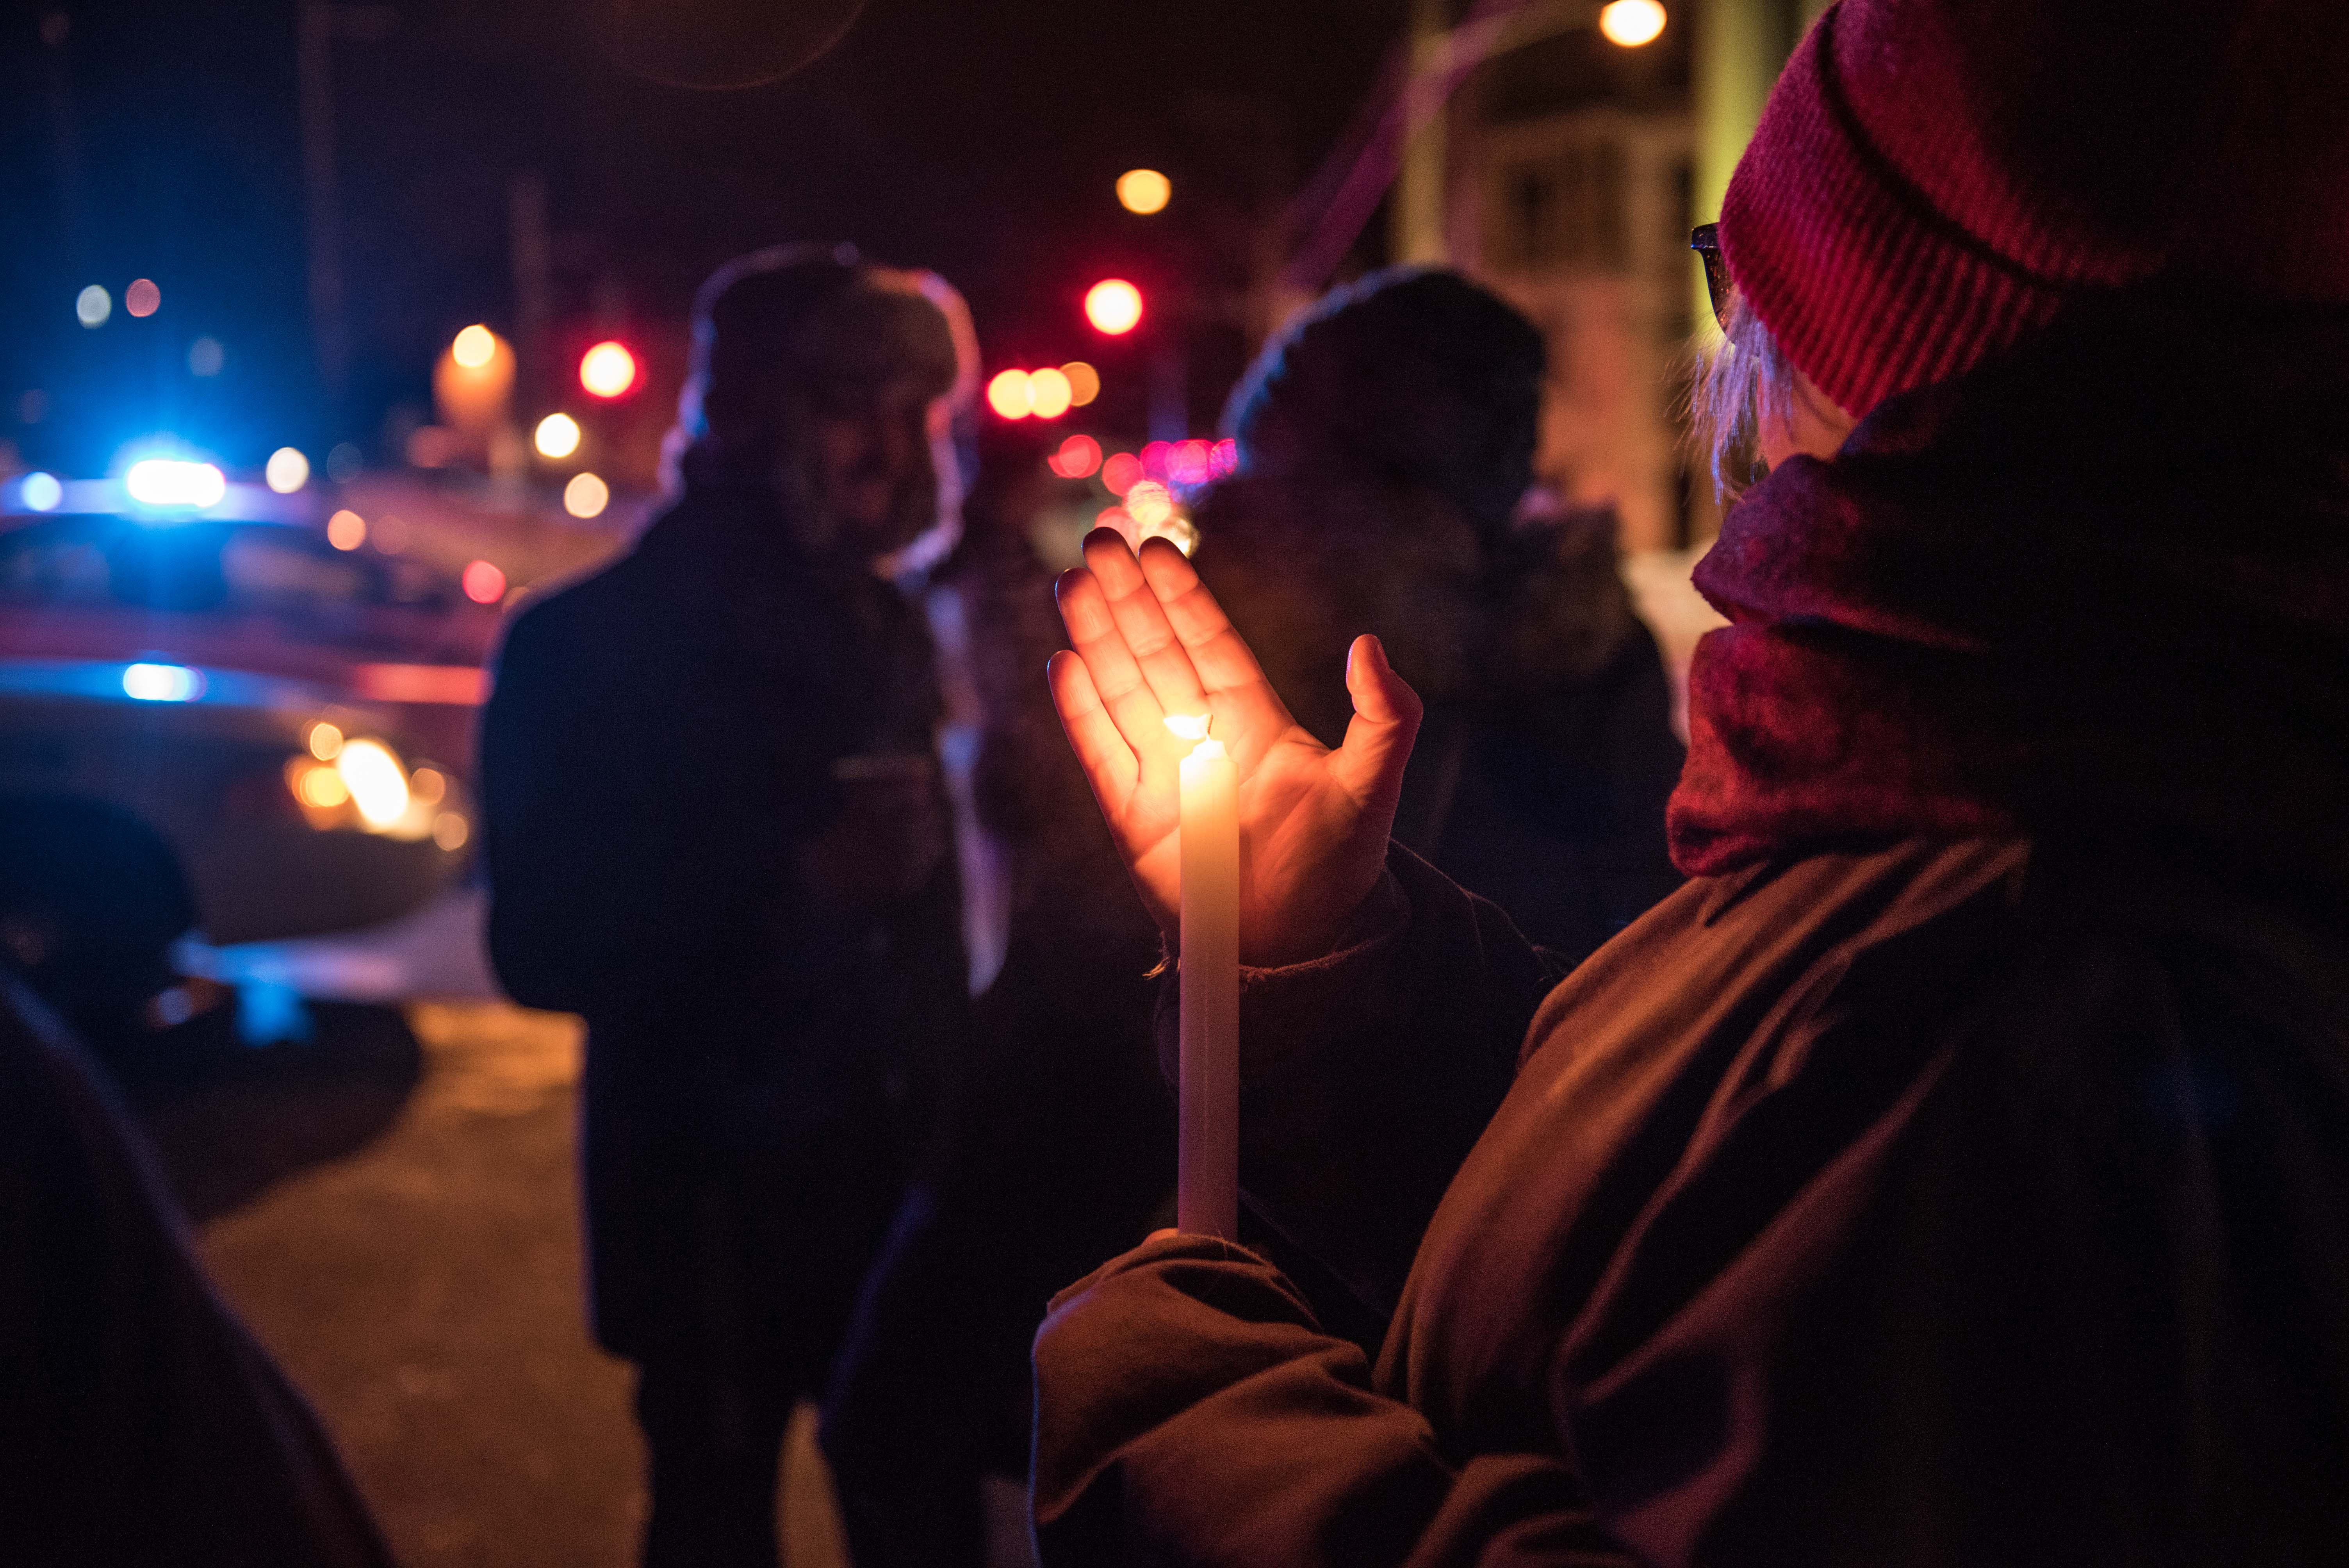 People come to show their support after a shooting occurred in a mosque at the Québec City Islamic cultural center on Sainte-Foy Street in Quebec city on January 29, 2017. GETTY IMAGES/AFP/ Alice Chiche